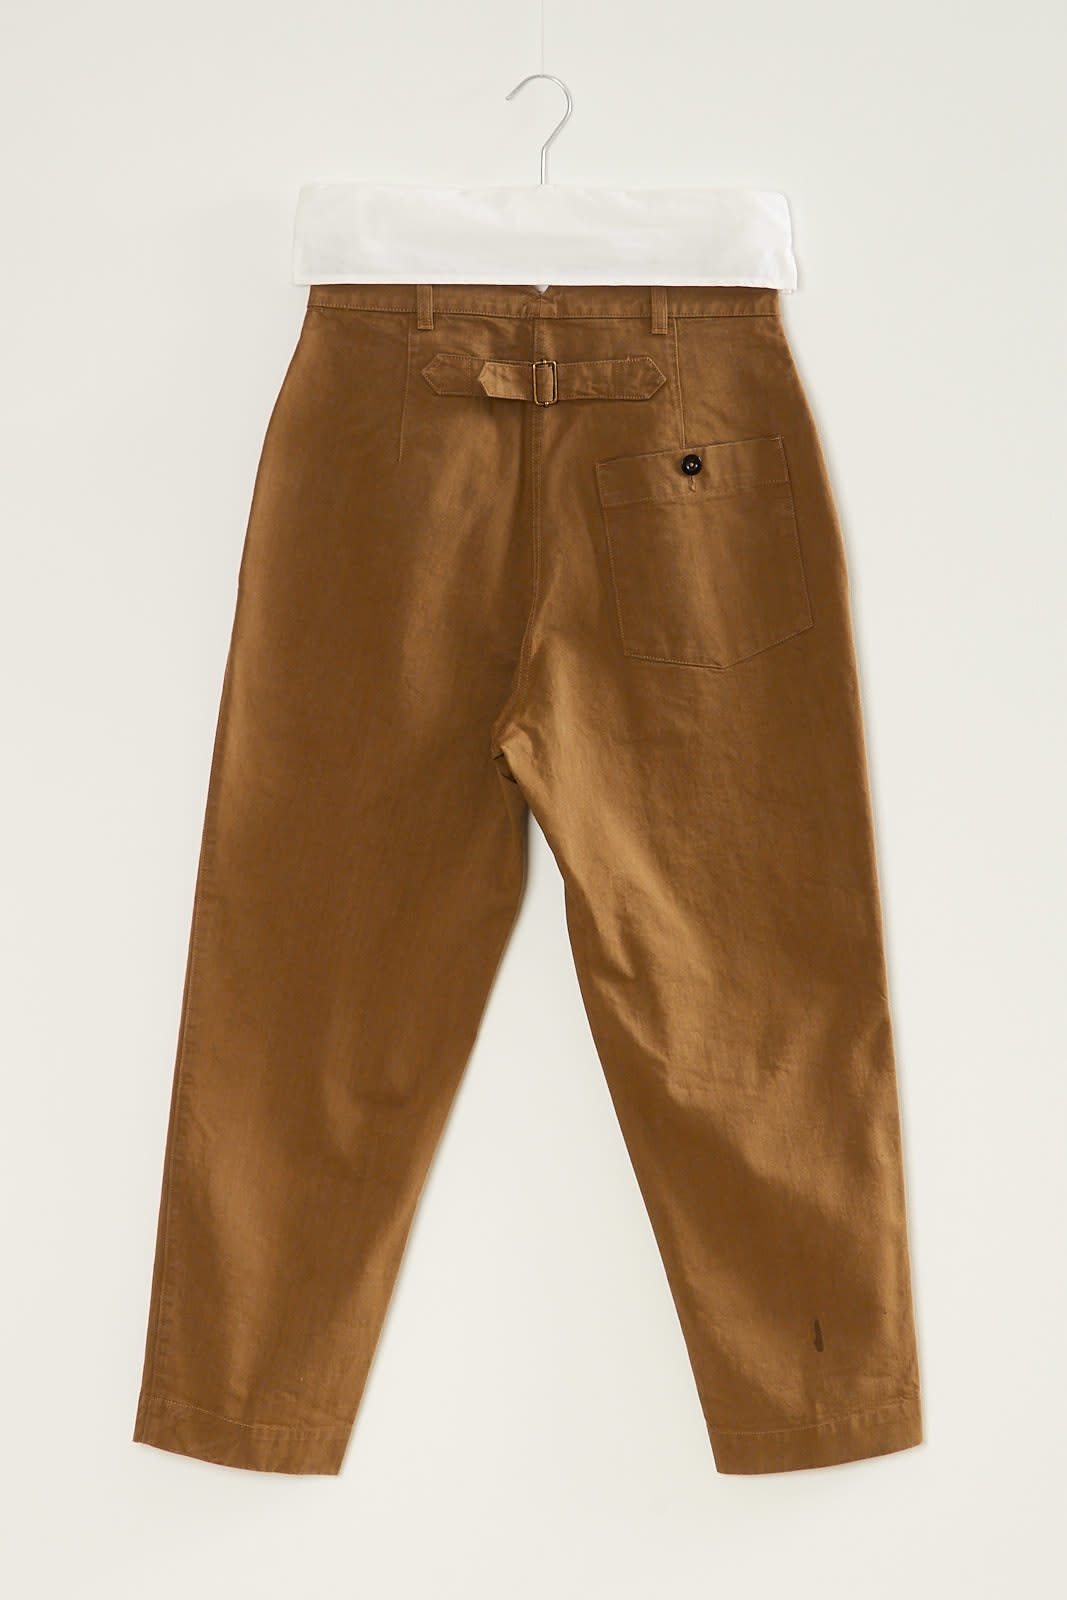 Margaret Howell - MHL clinched back tapered trousers